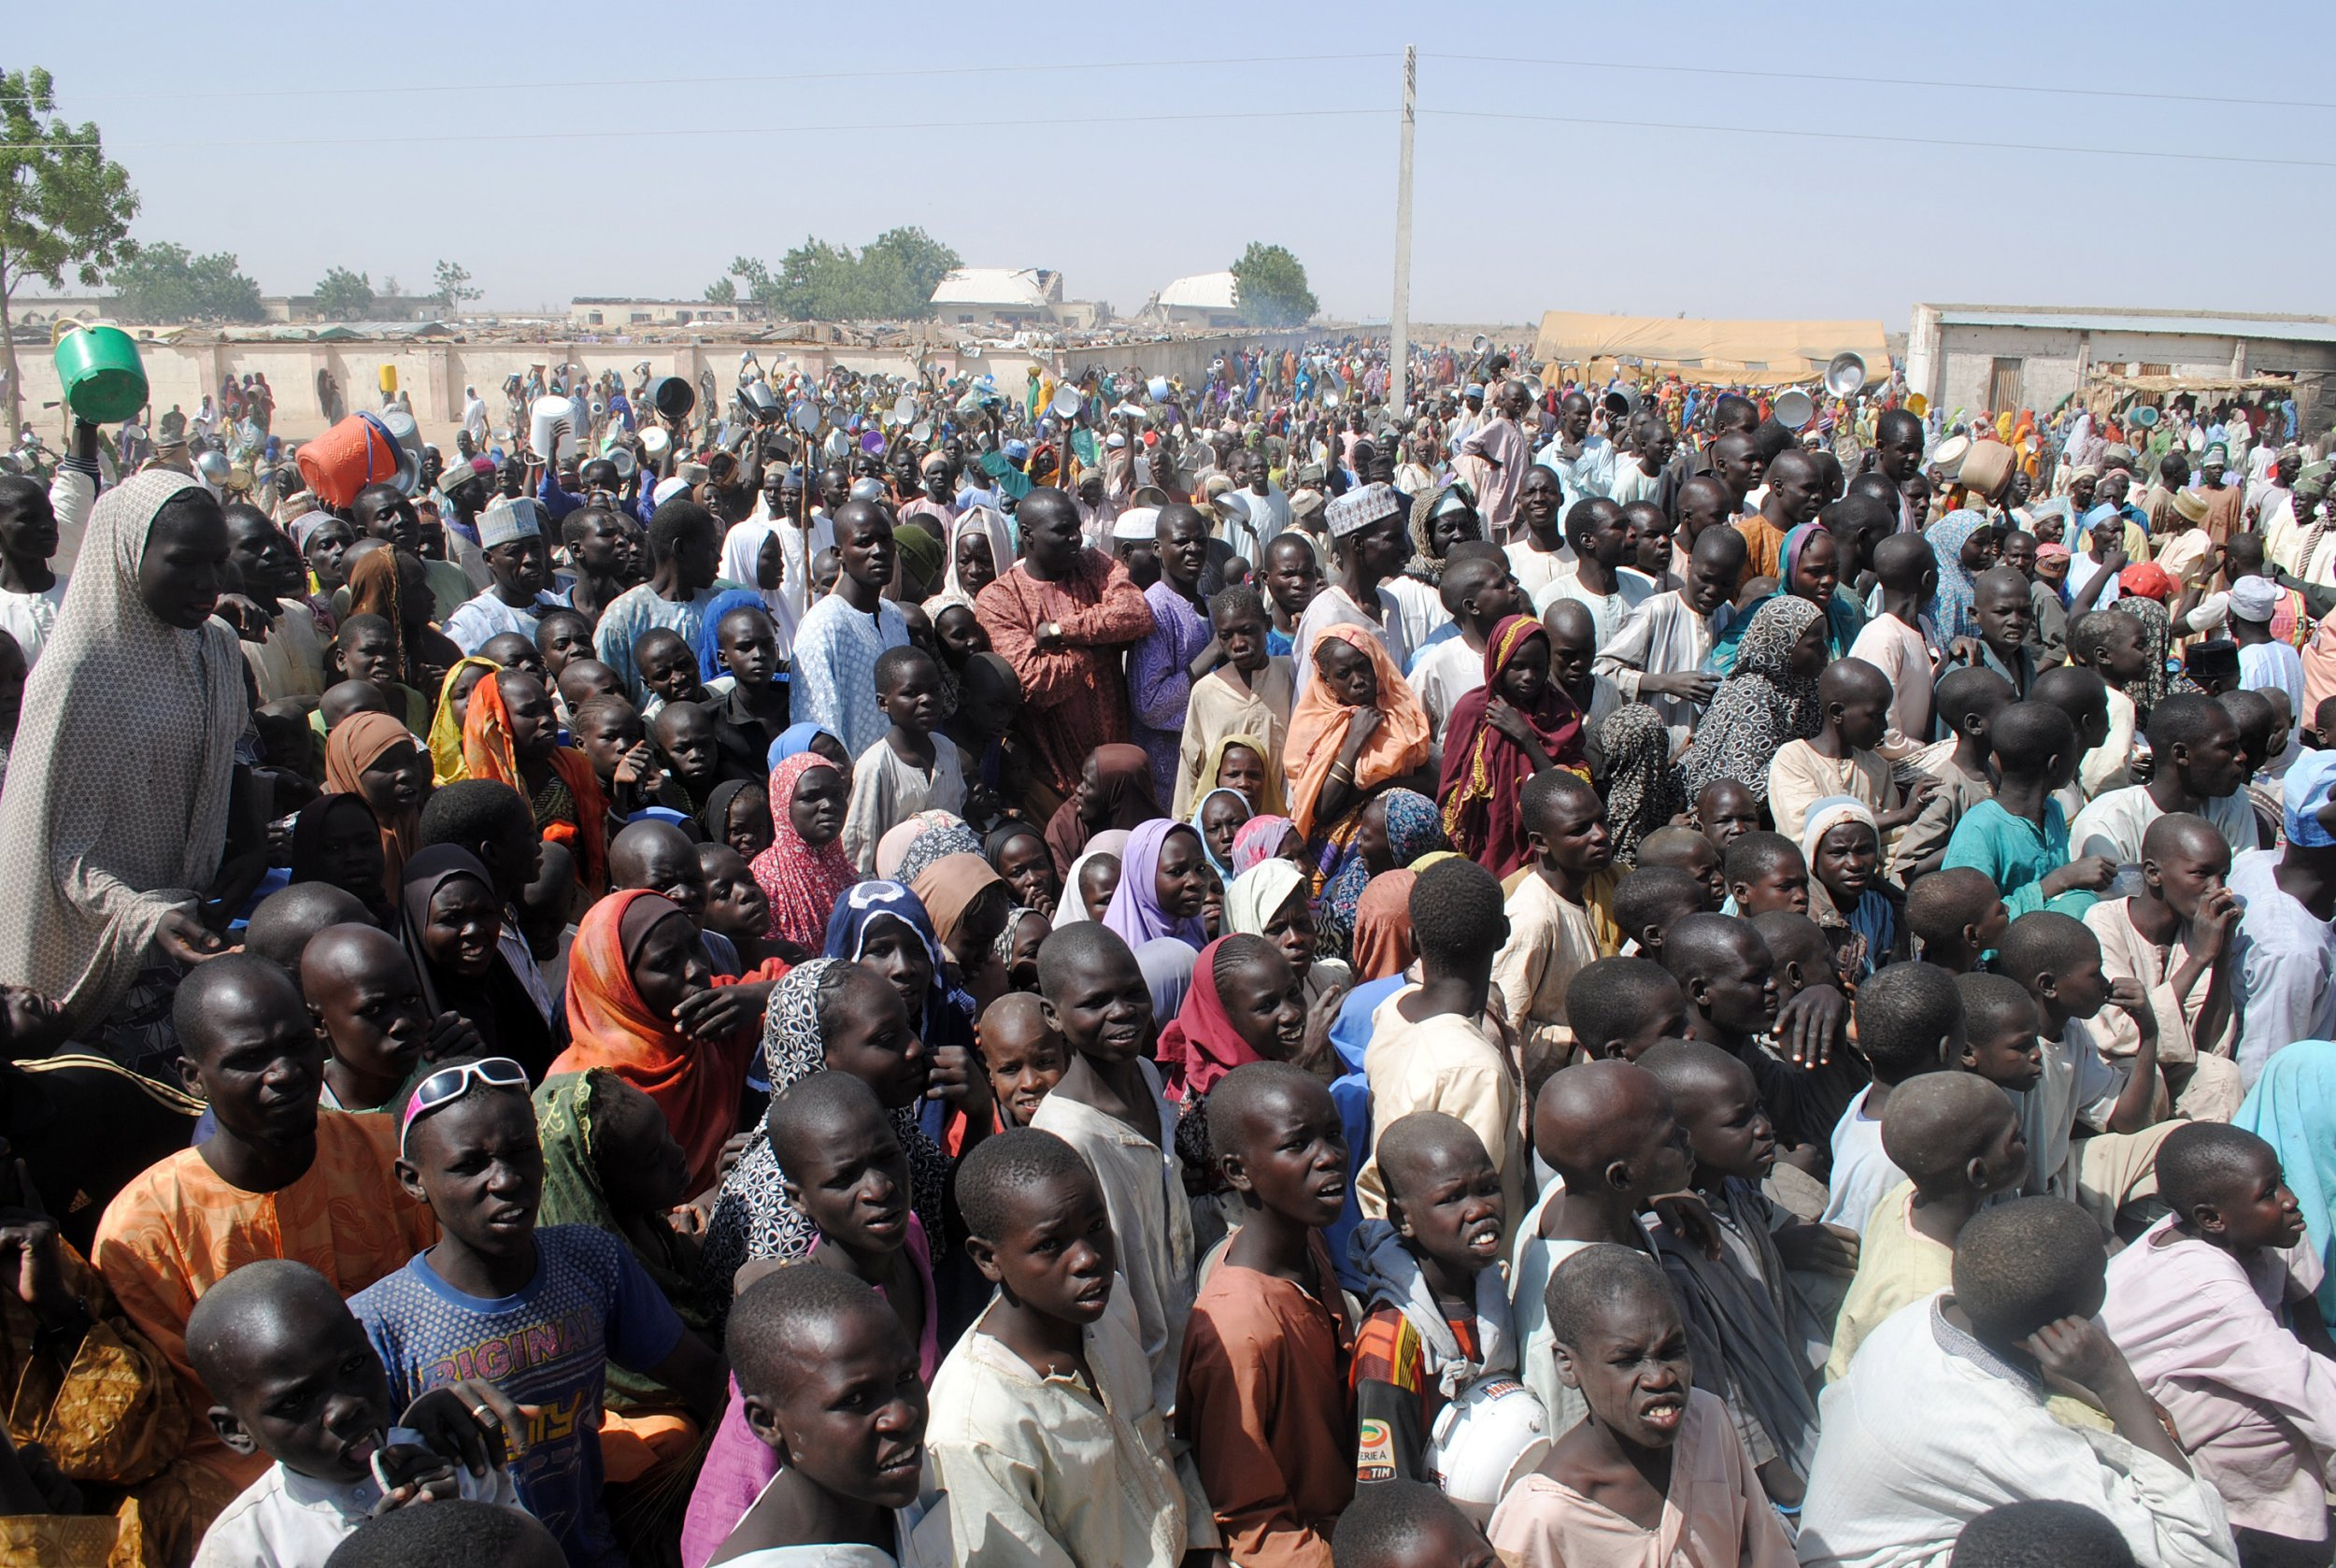 Internally Displaced Persons (IDP) mostly women and children stand waiting for food at Dikwa Camp, in Borno State in north-eastern Nigeria, on February 2, 2016.nThe National Emergency Management Agency in collaboration with Borno State Emergency Management Agency has set up new IDP camps in Ngala, Marte, Bama and Mafa councils to decongest the growing population of IDP camp set up at Dikwa council of Borno State. Nigeria expects many of the 2.1 million people internally displaced by Boko Haram's insurgency to return home in the coming year, amid claims the Islamists are in disarray and a spent force. / AFP / STRINGER        (Photo credit should read STRINGER/AFP/Getty Images)